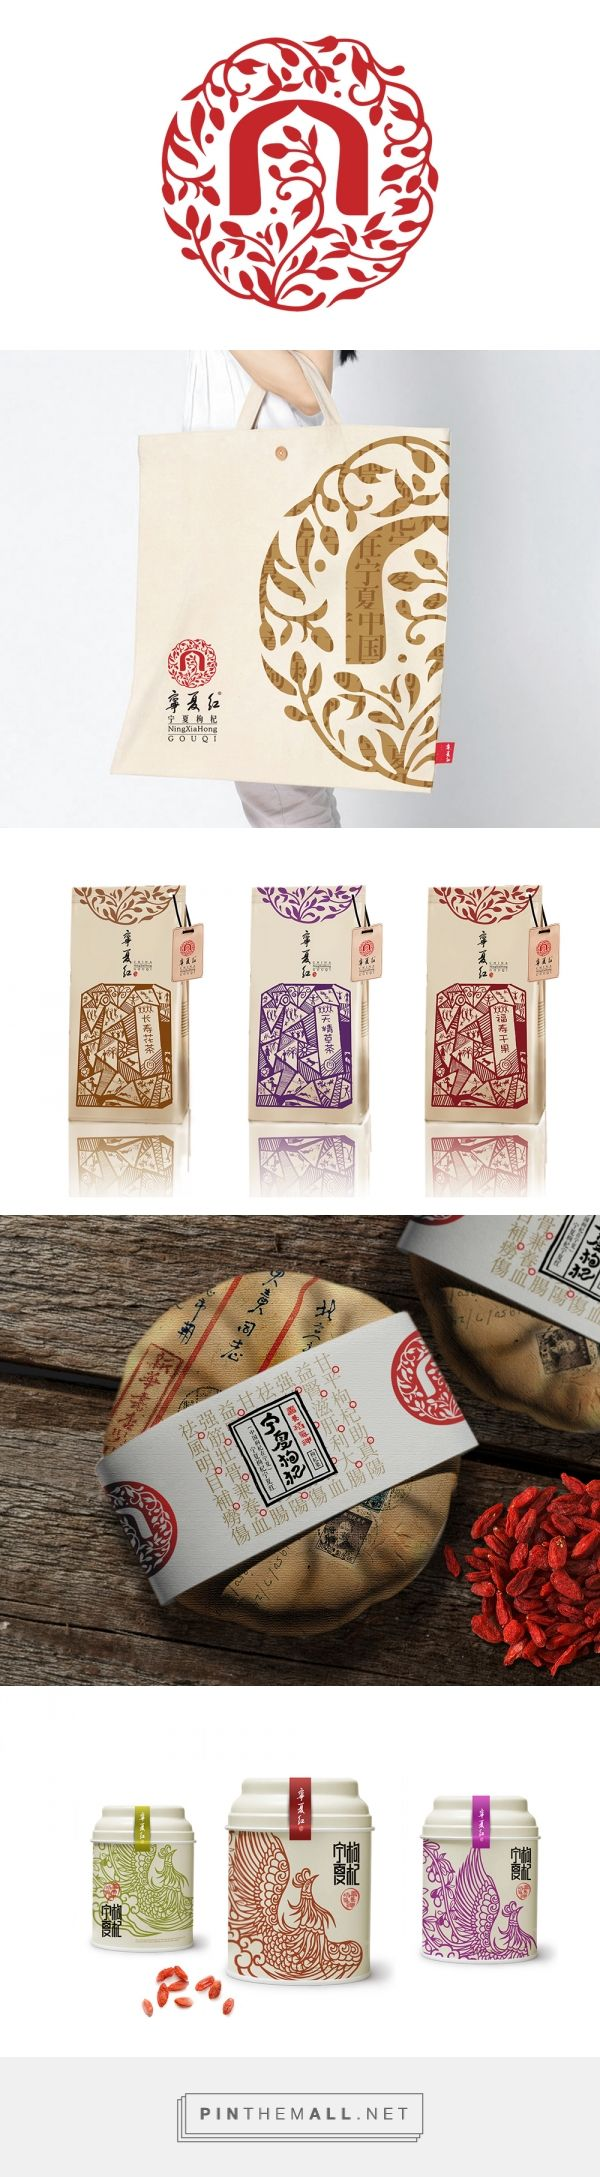 Ningxiahong medlar on Behance by Heyes Design Zhengzhou, China curated by Packaging Diva PD. 宁夏红——善养精气神 Beautiful calligraphy on assorted packaging branding.